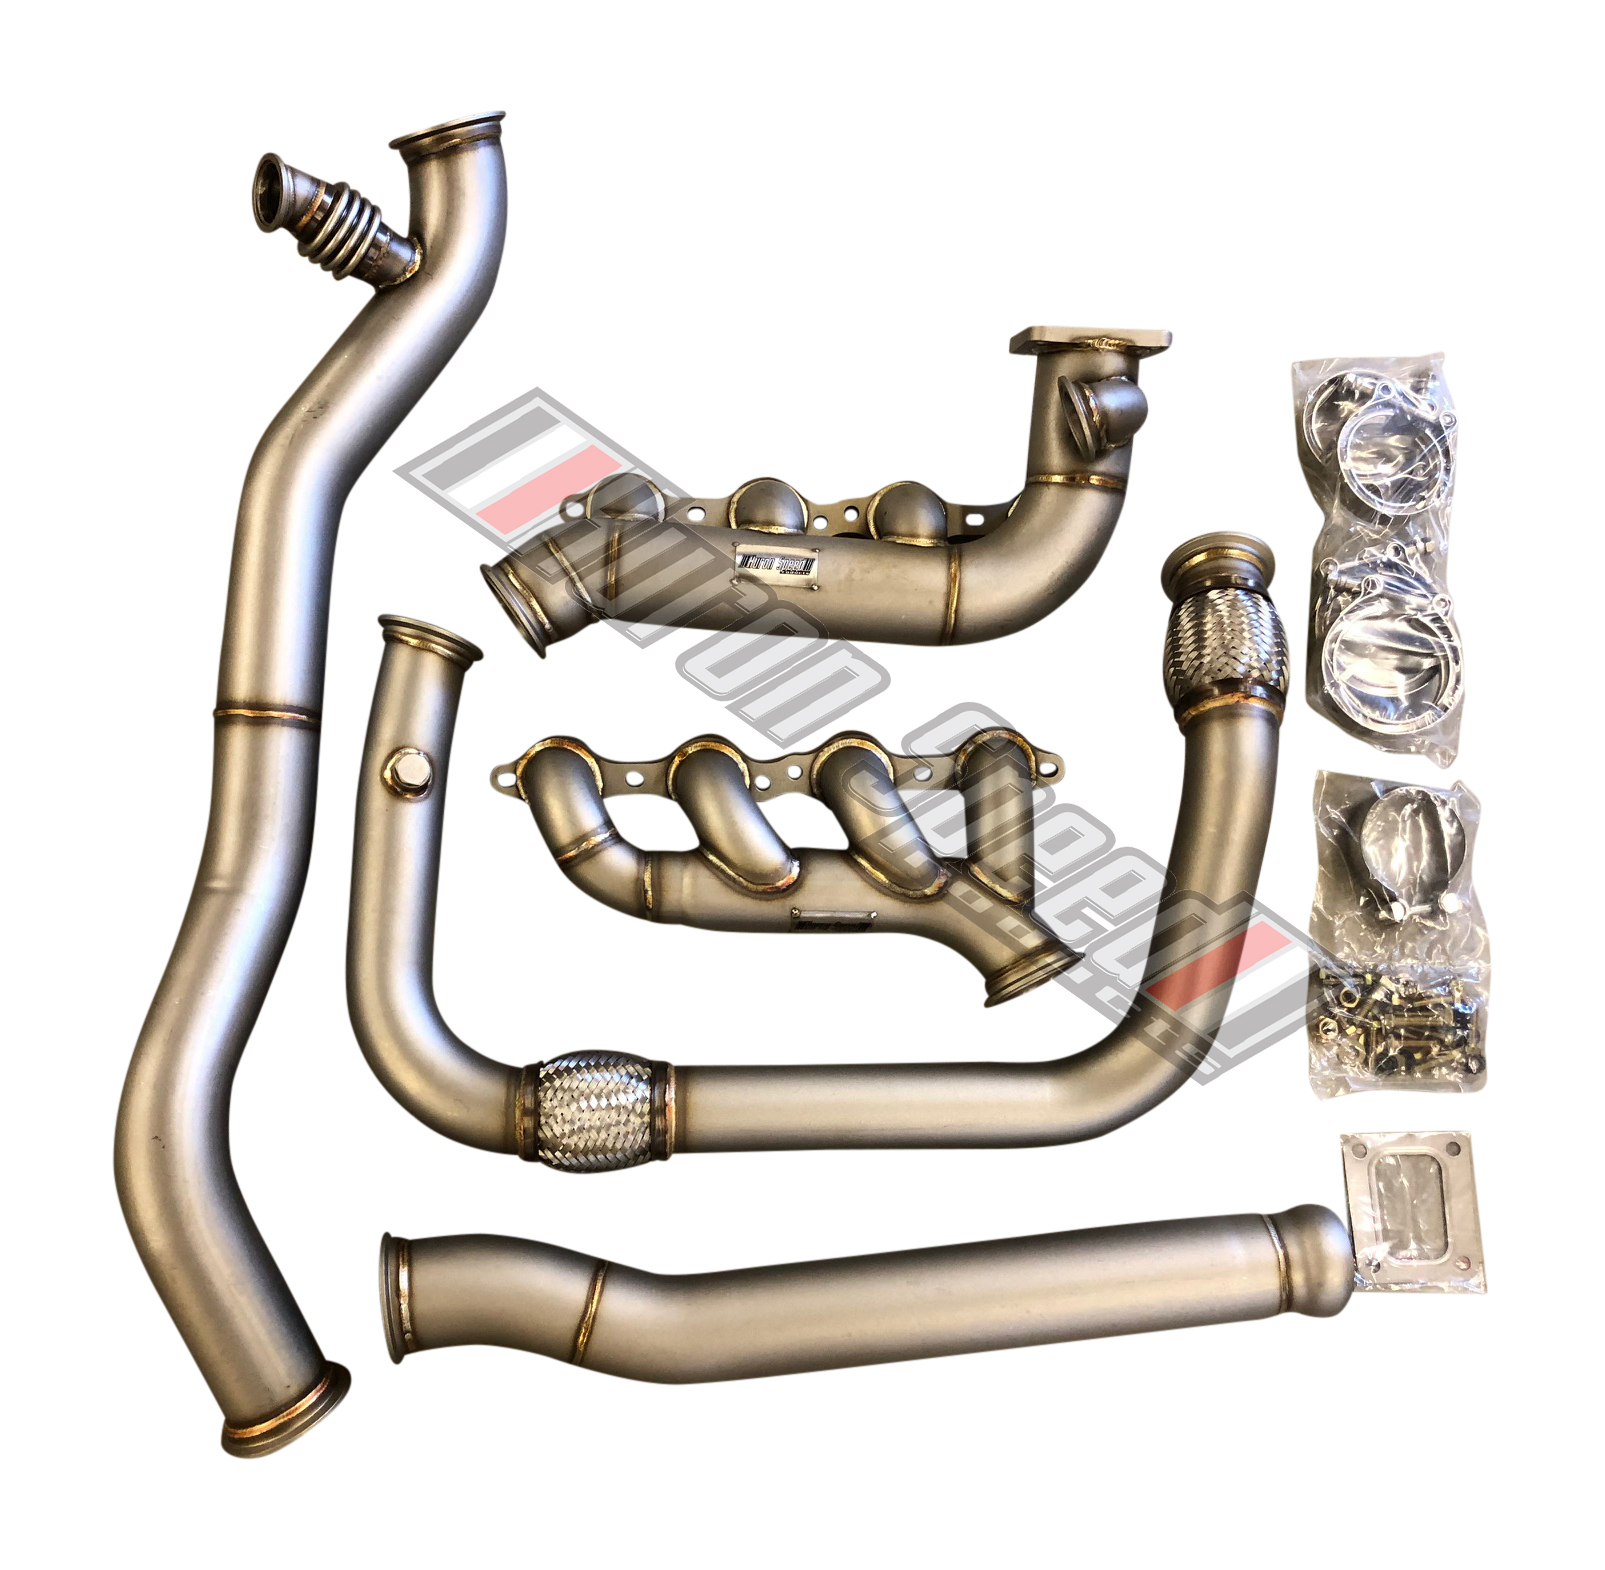 Huron Speed V3 99-13 Hot-Side T4 Turbo Kit - FINAL PAYMENT